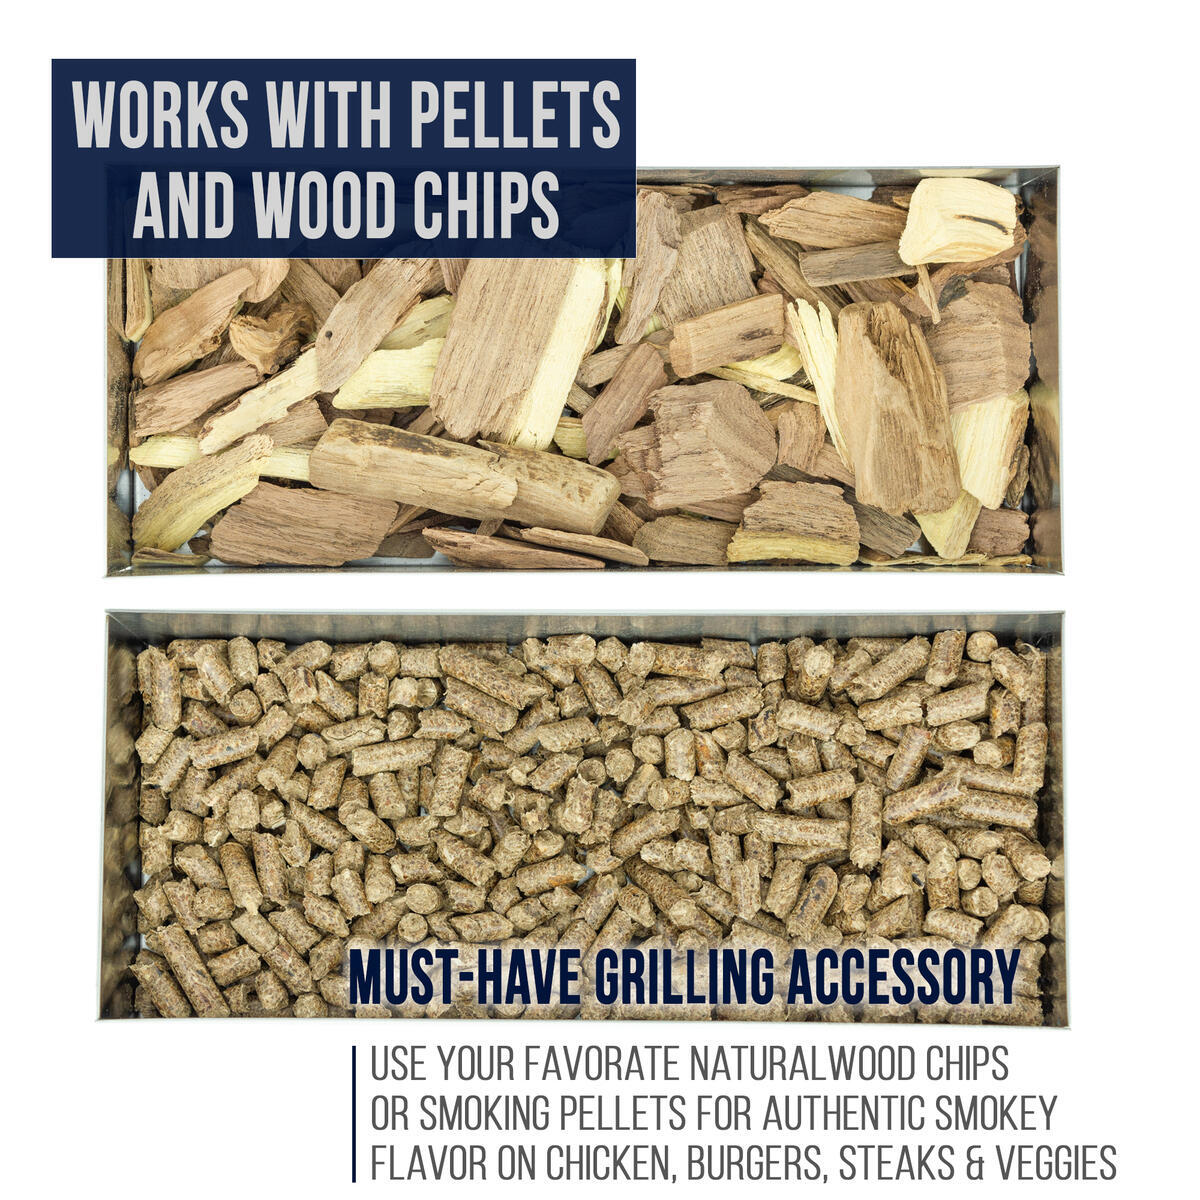 Smoker Box for Gas Grills and Charcoal Kettles - Works with All Pellets and Wood Chips - Professional BBQ Smoke Flavor from Propane or Electric Grilling